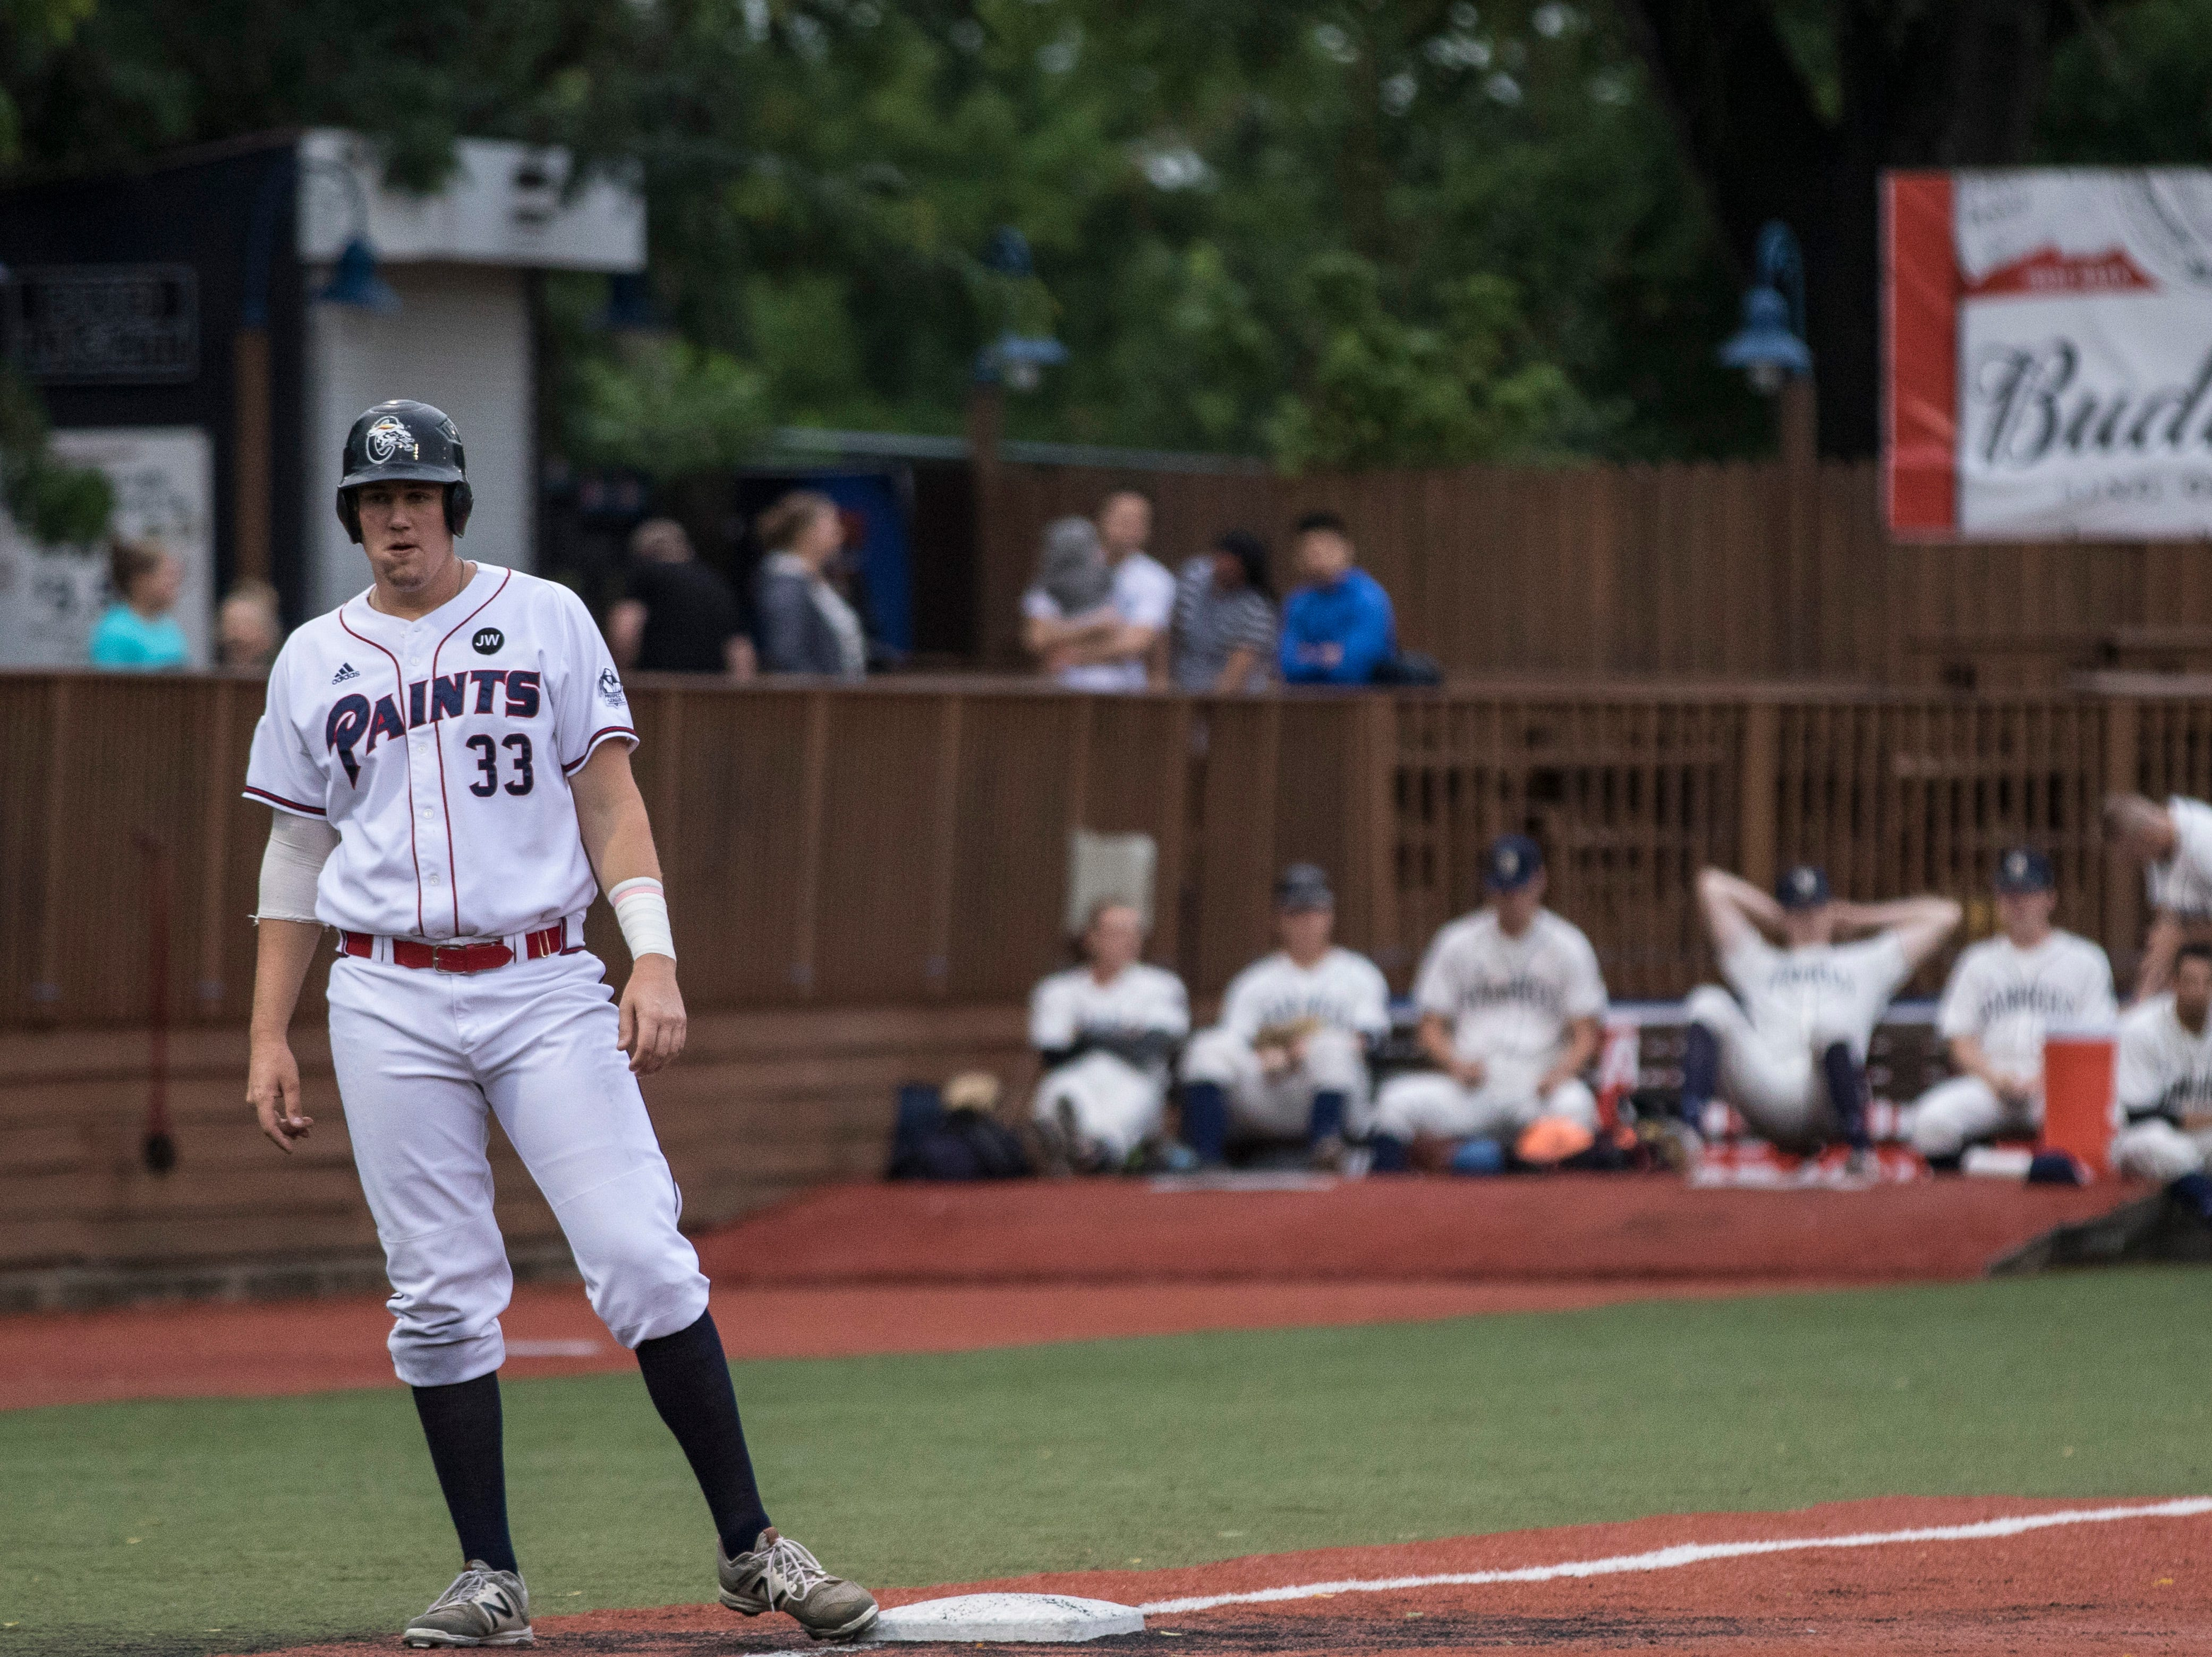 The Chillicothe Paints defeated the Butler BlueSox 10-5 on Saturday, but lost to the Kokomo Jackrabbits 5-0 on Sunday, dropping to second place.